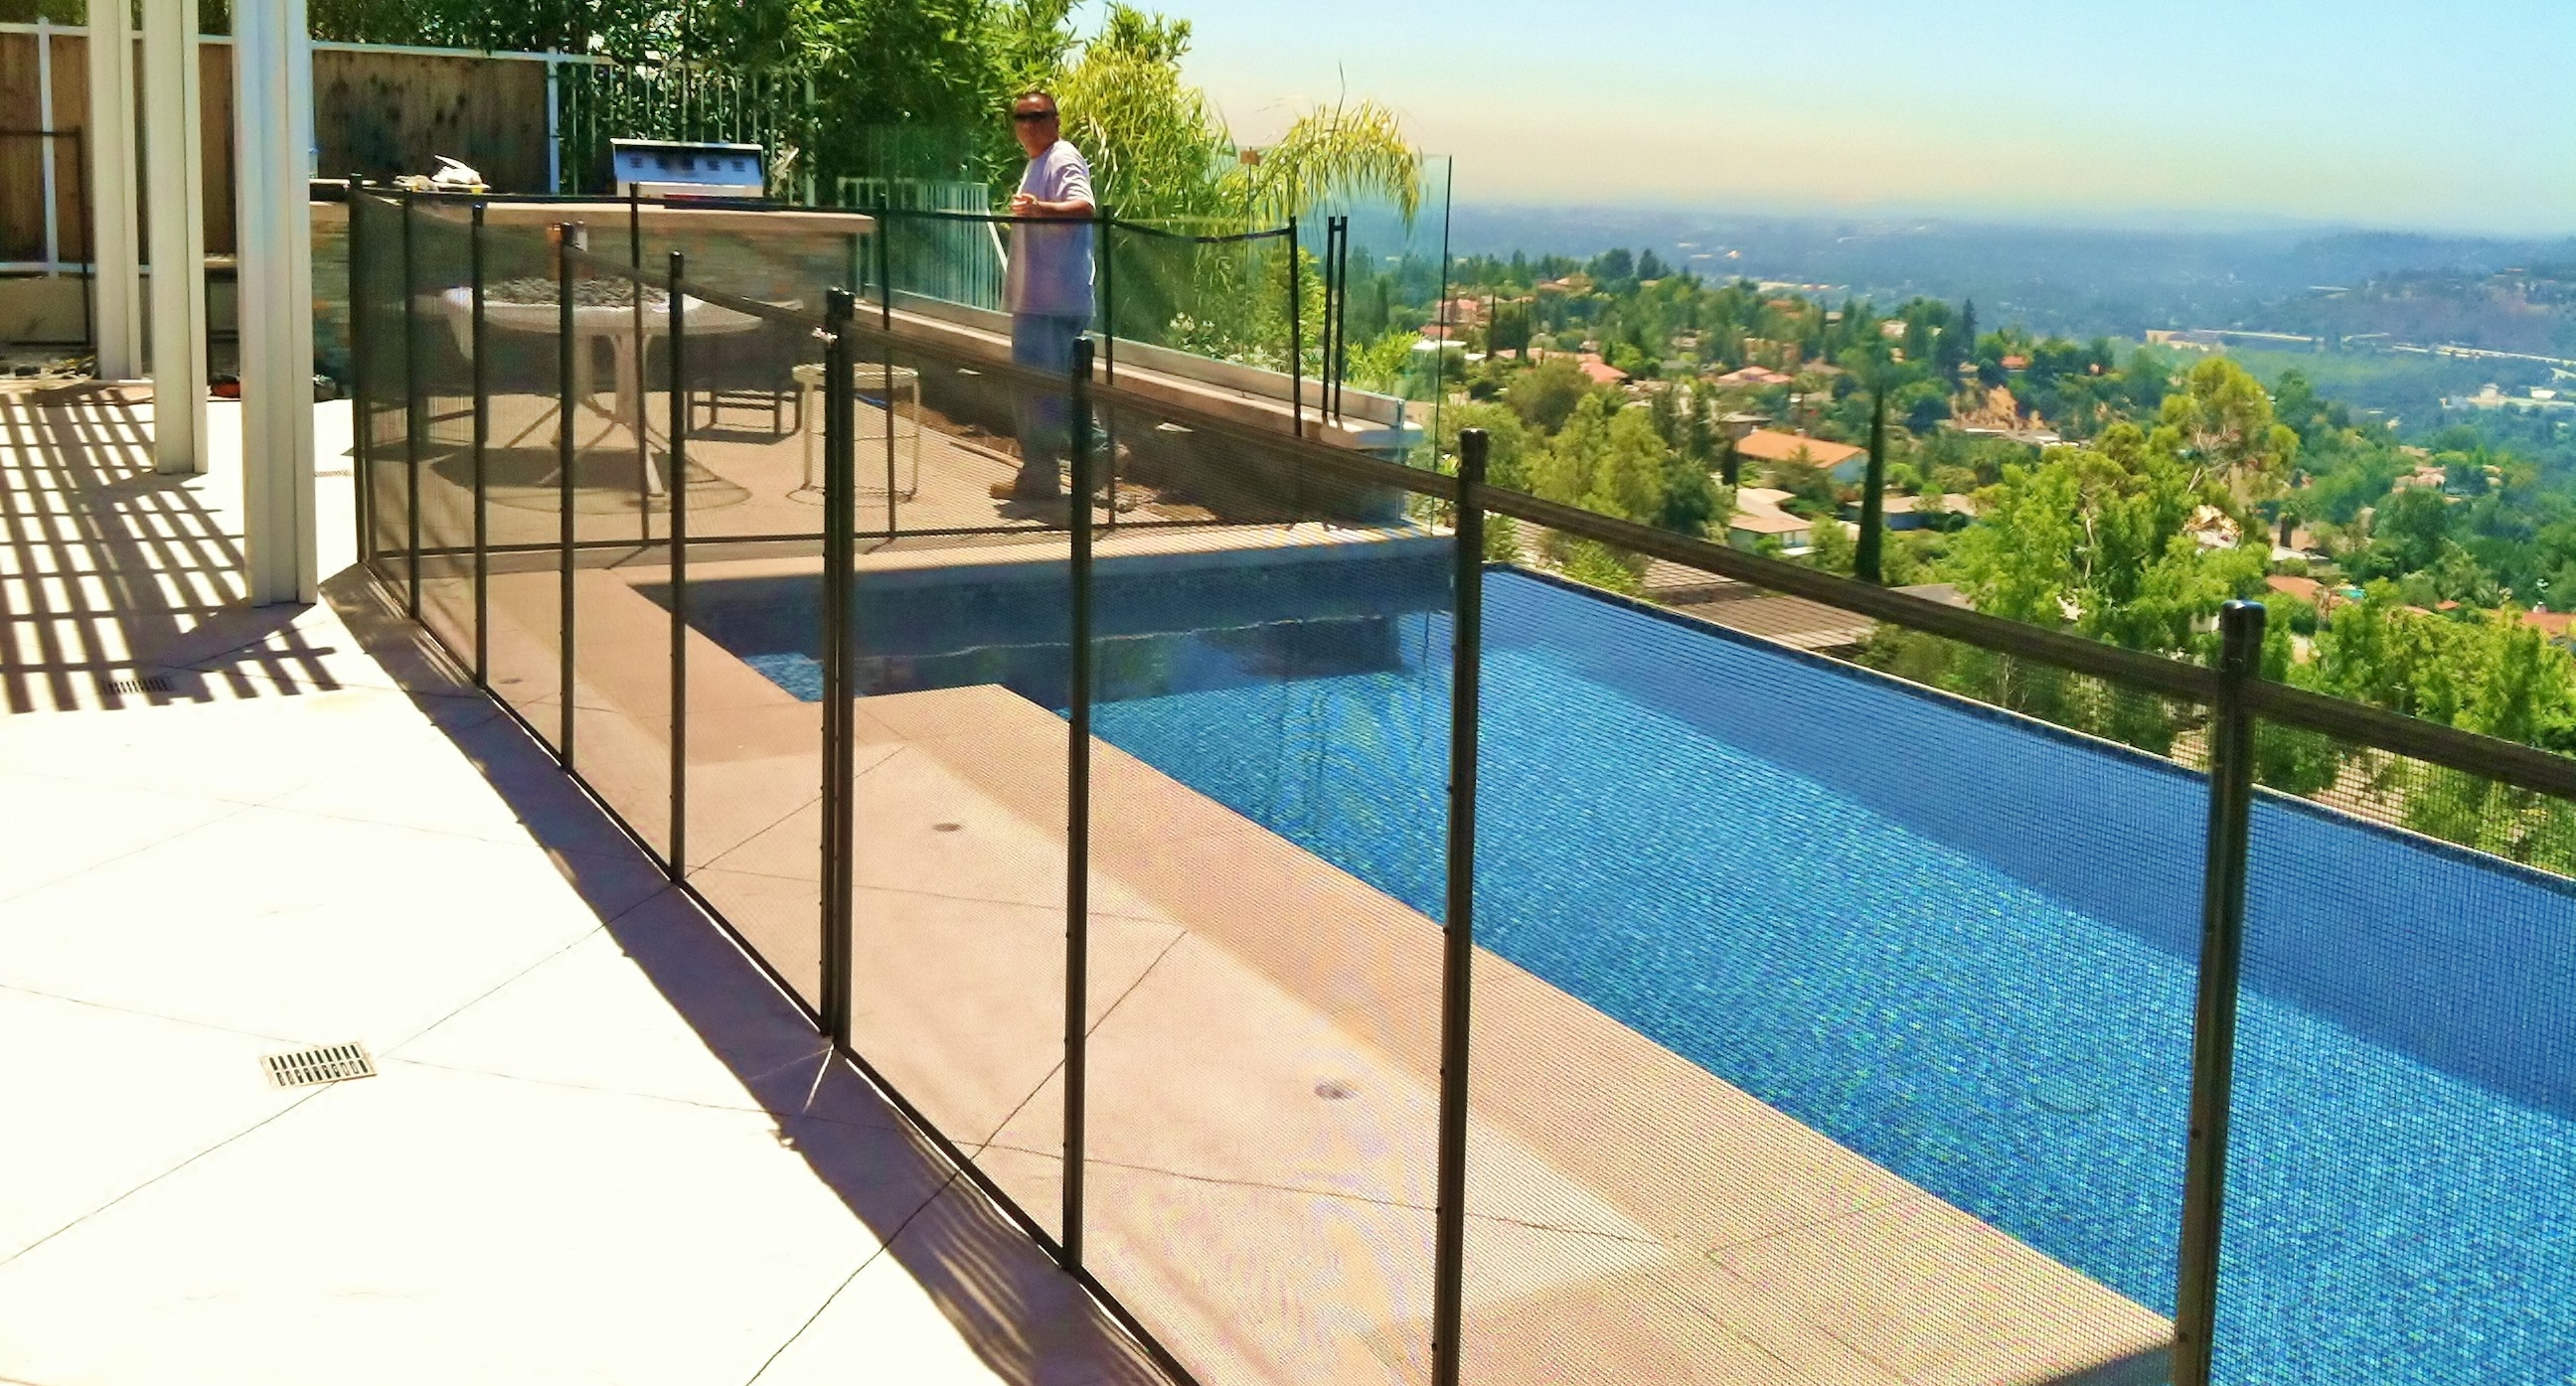 Safeguard Mesh Glass Pool Fence Company Coupons Near Me In San Diego 8coupons